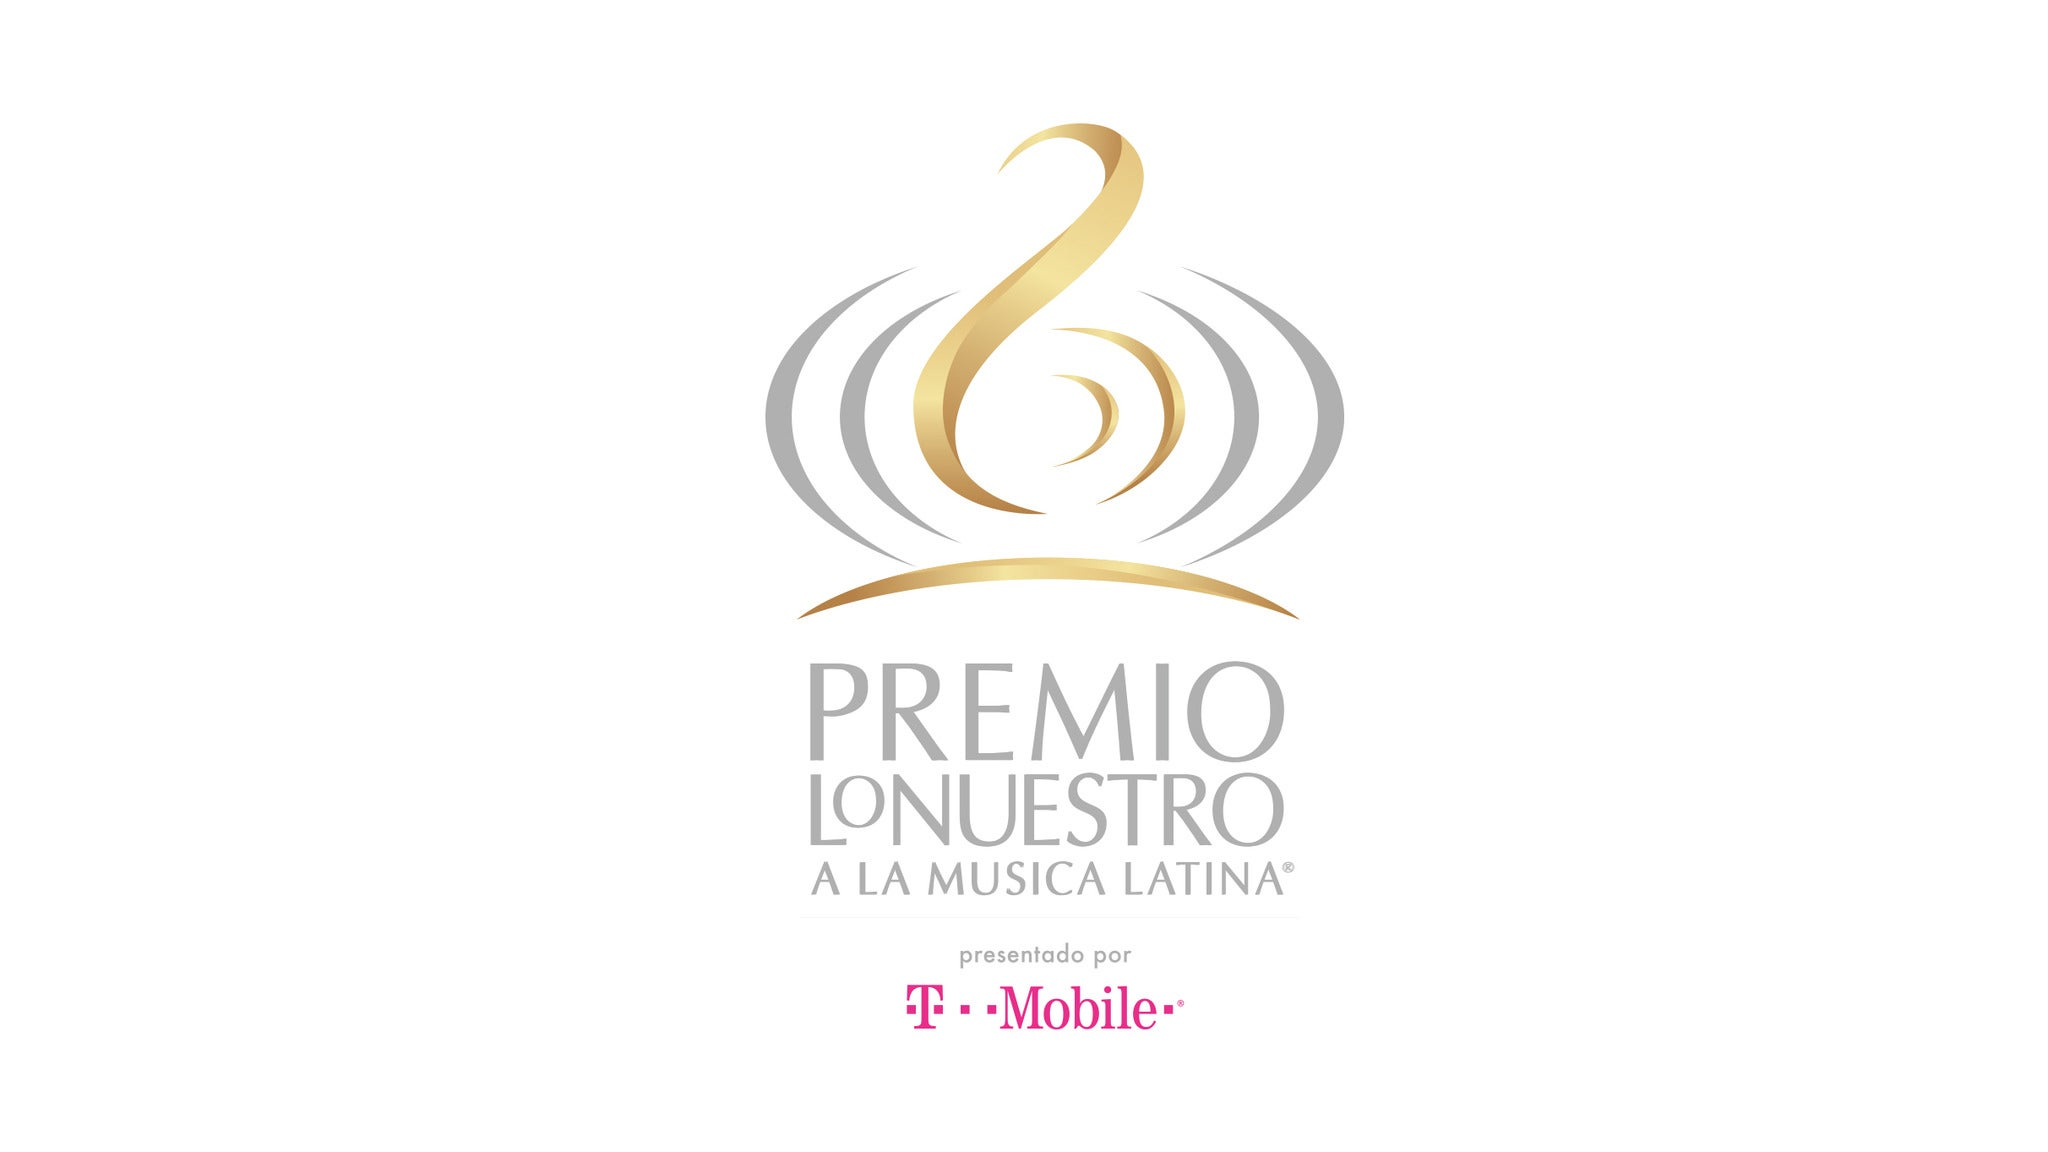 Premio Lo Nuestro presented by T Mobile